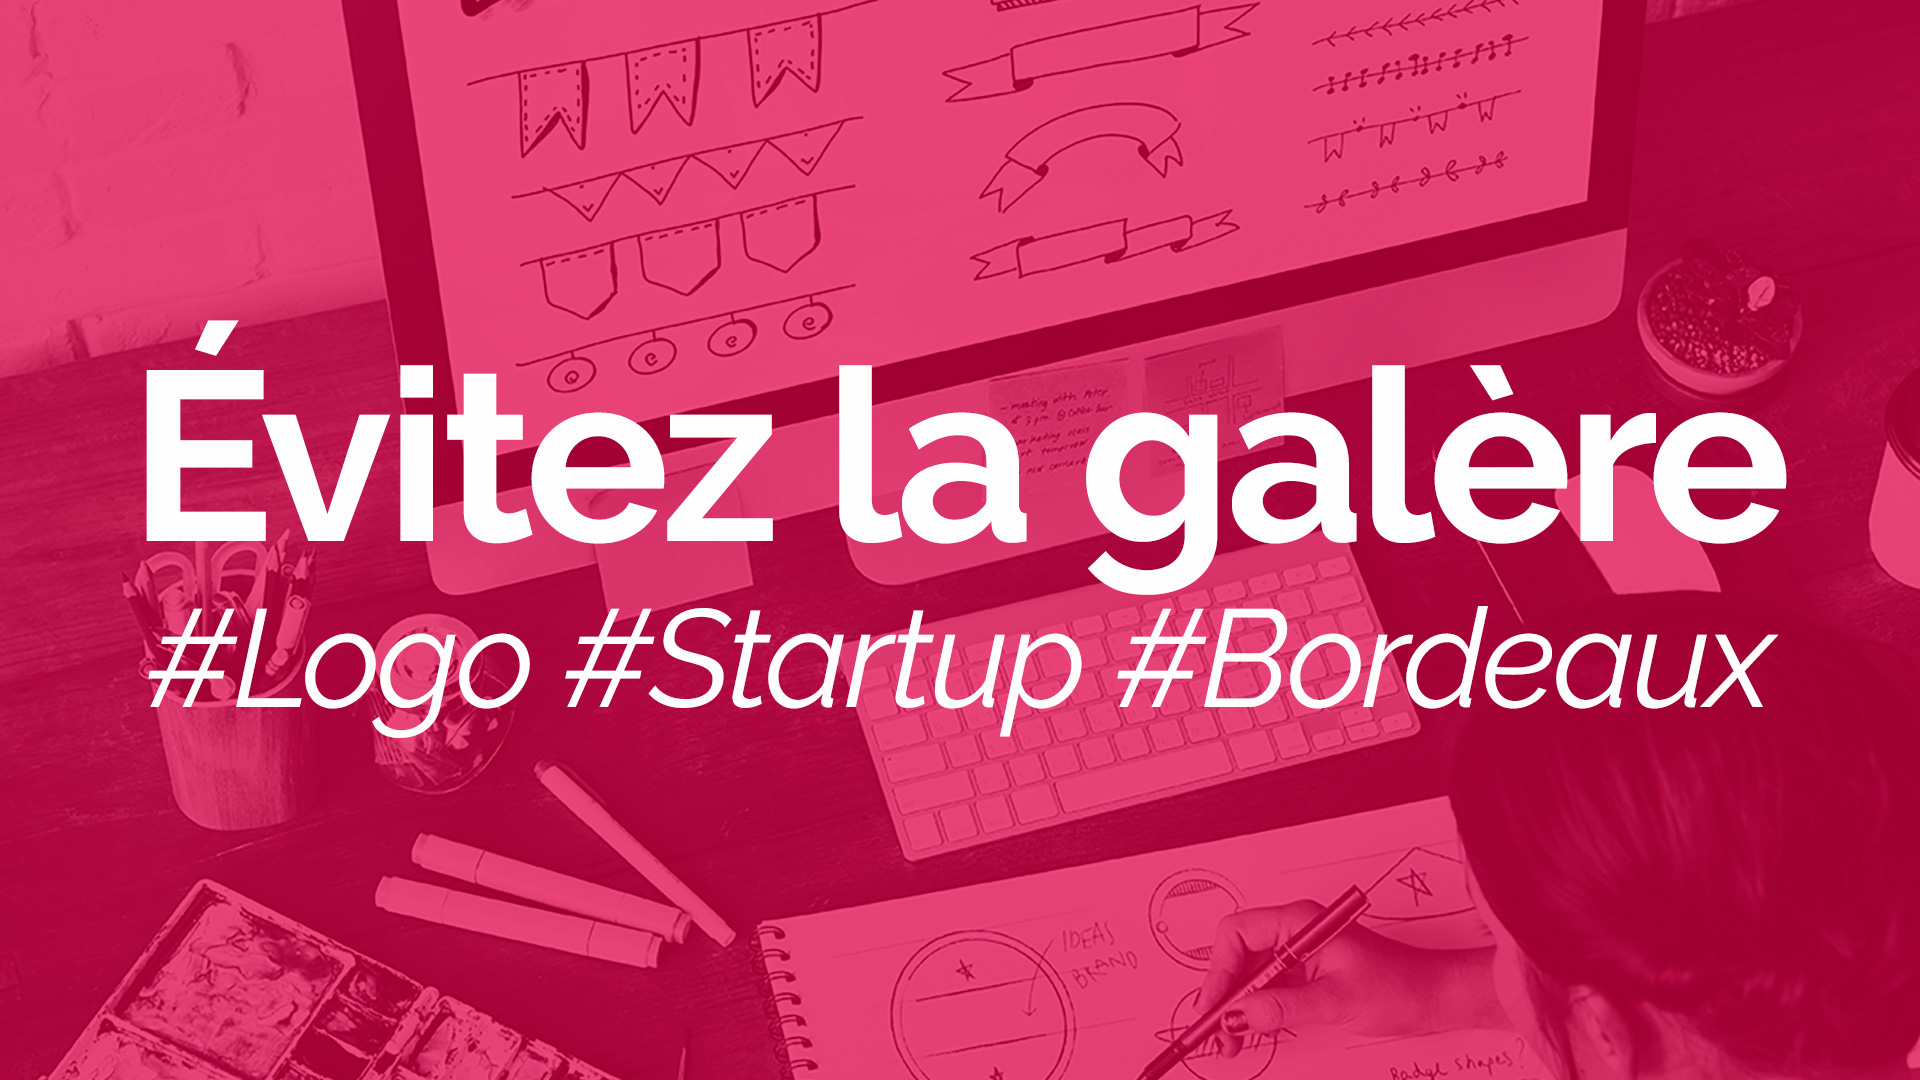 Start up Bordeaux - Définir son logo et son identité visuelle